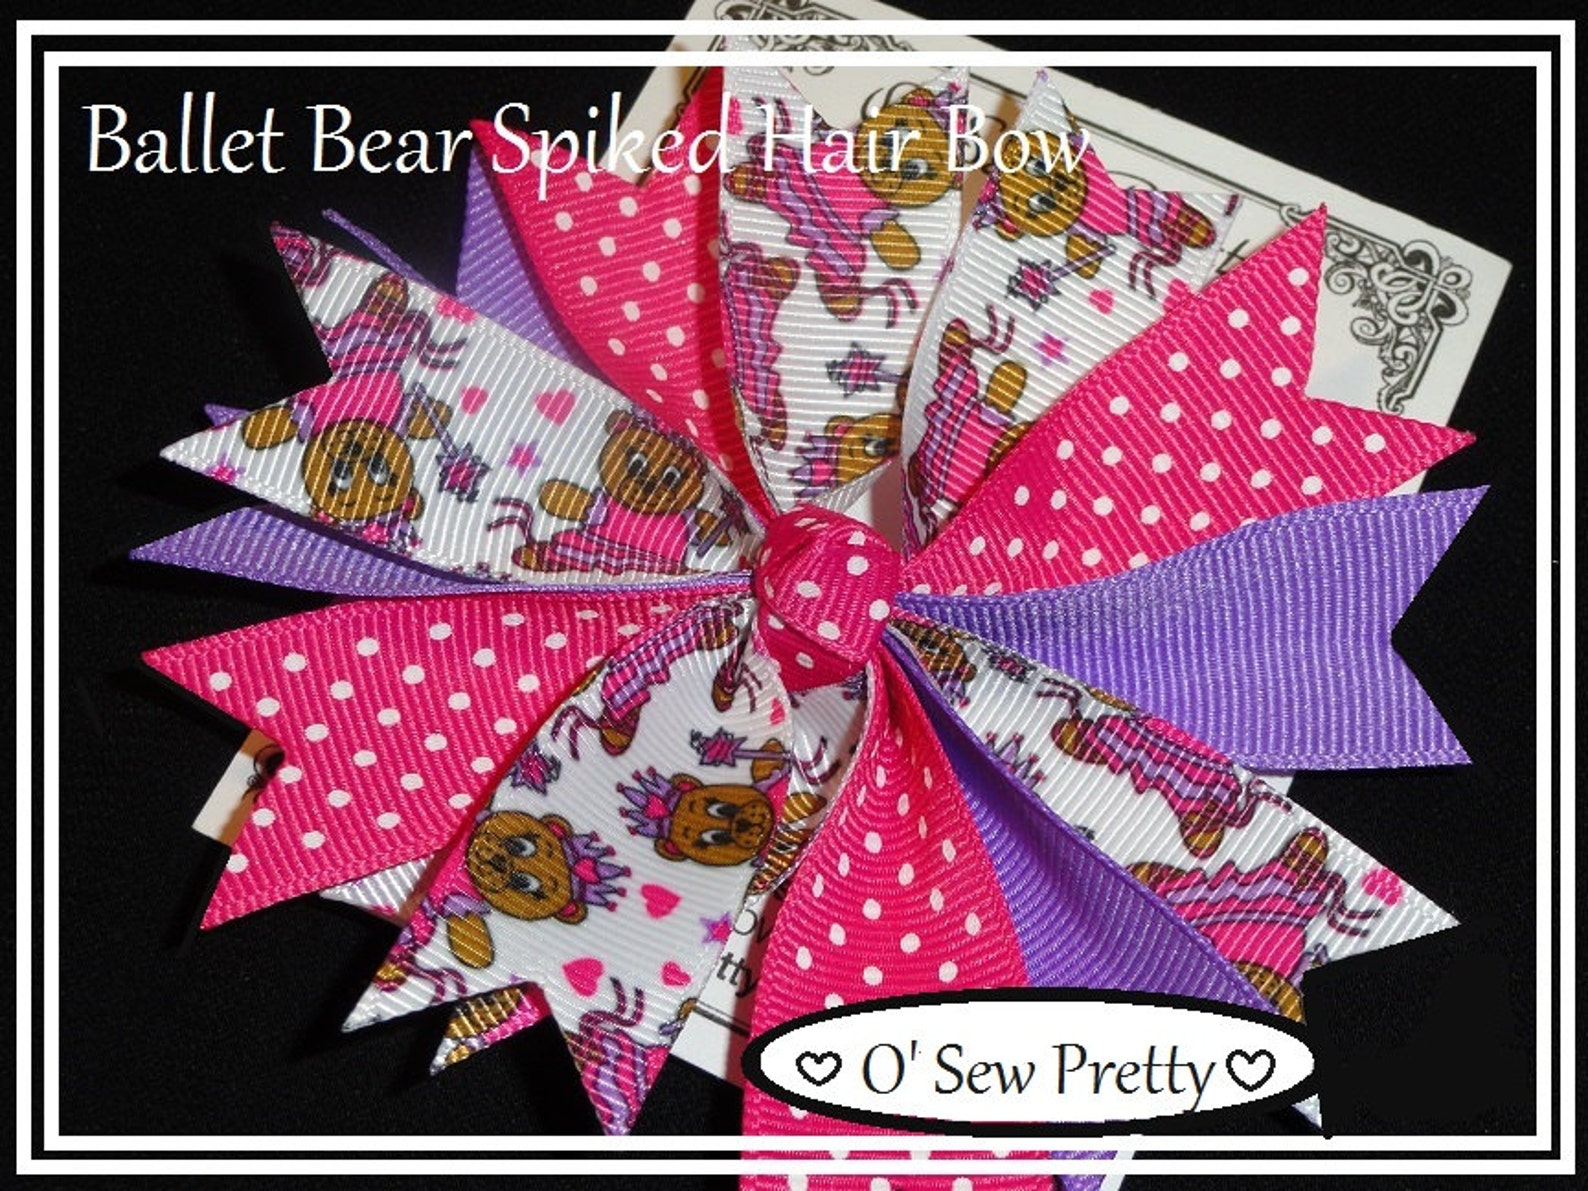 ballet hair bow, ballet princess hair bow, ballerina hair bow, spiked hair bows, hair bow, ballet bear hair bow, pink and purple